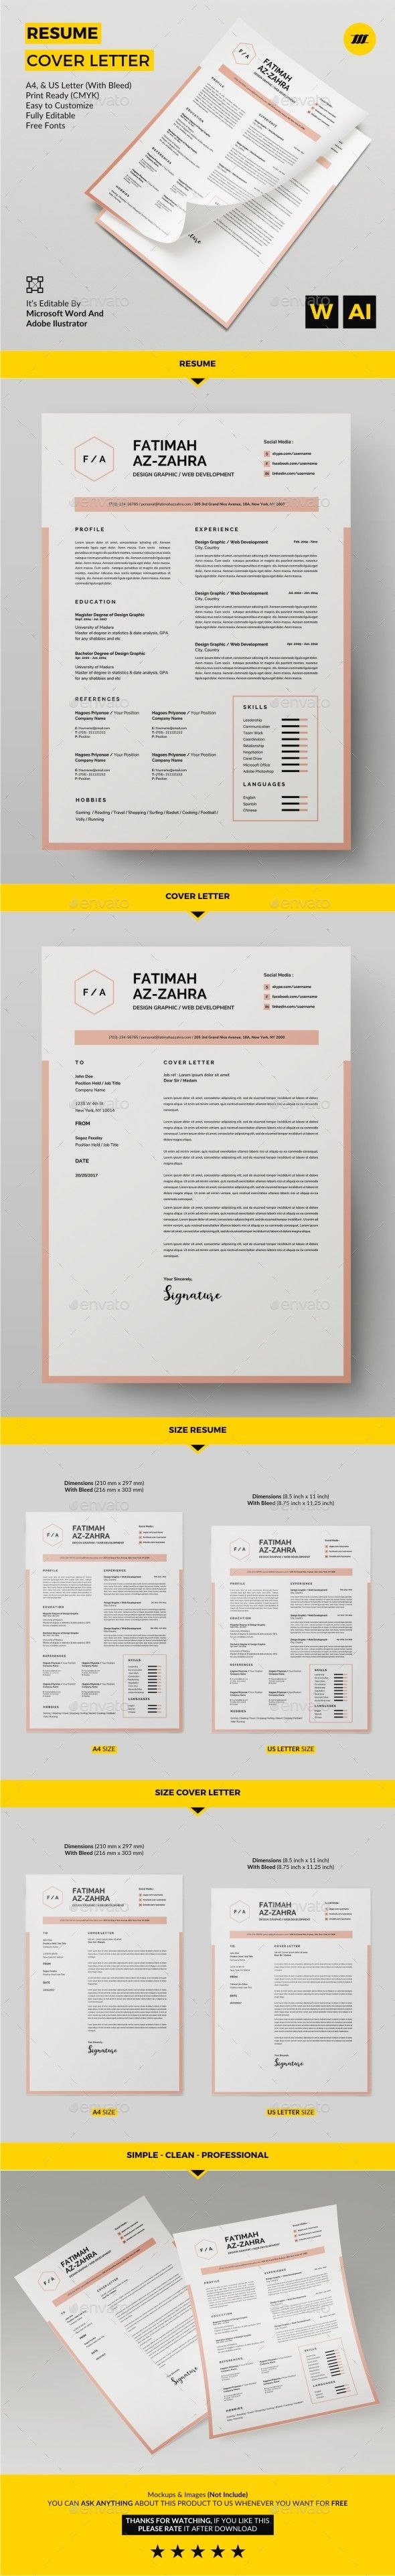 Illustrator Resume Templates Resume  Ai Illustrator Resume Cover Letters And Font Logo